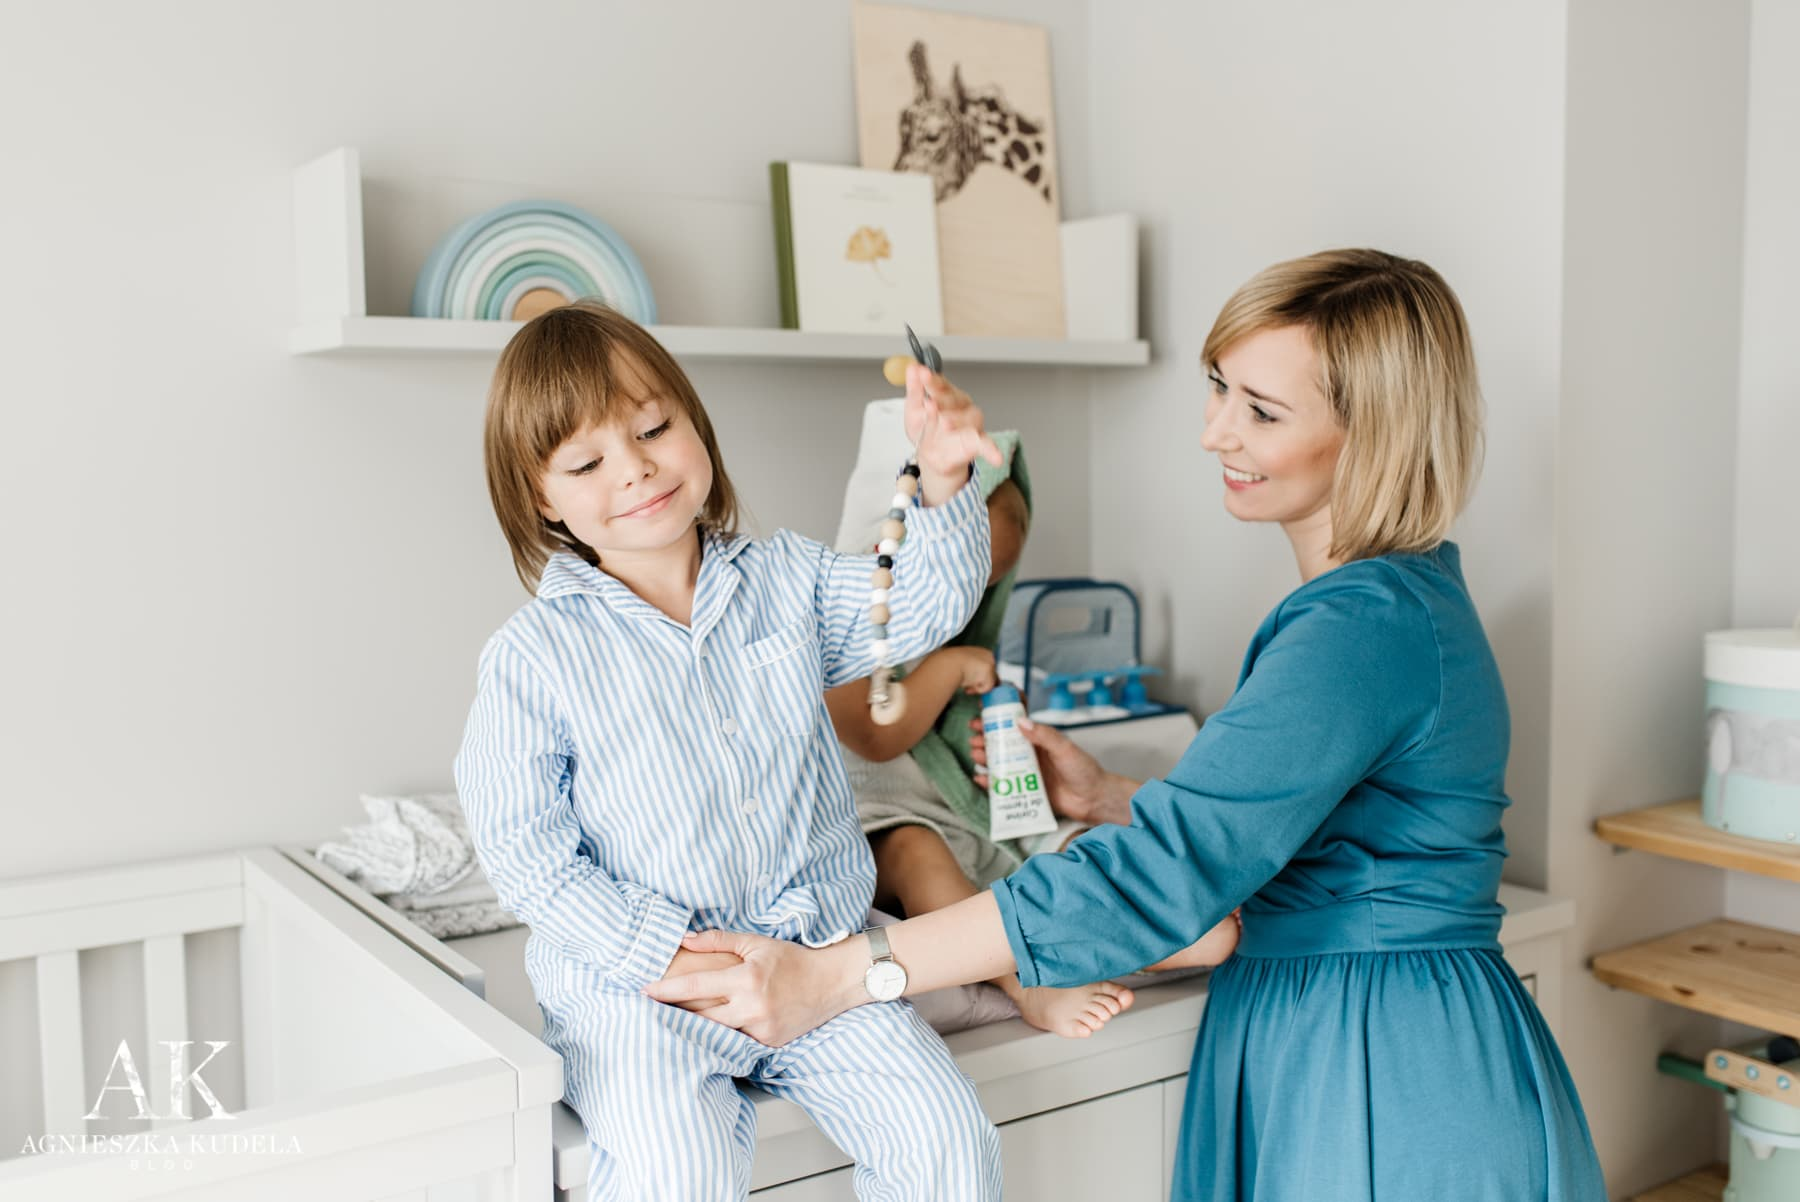 cosmetics for children without harmful substances